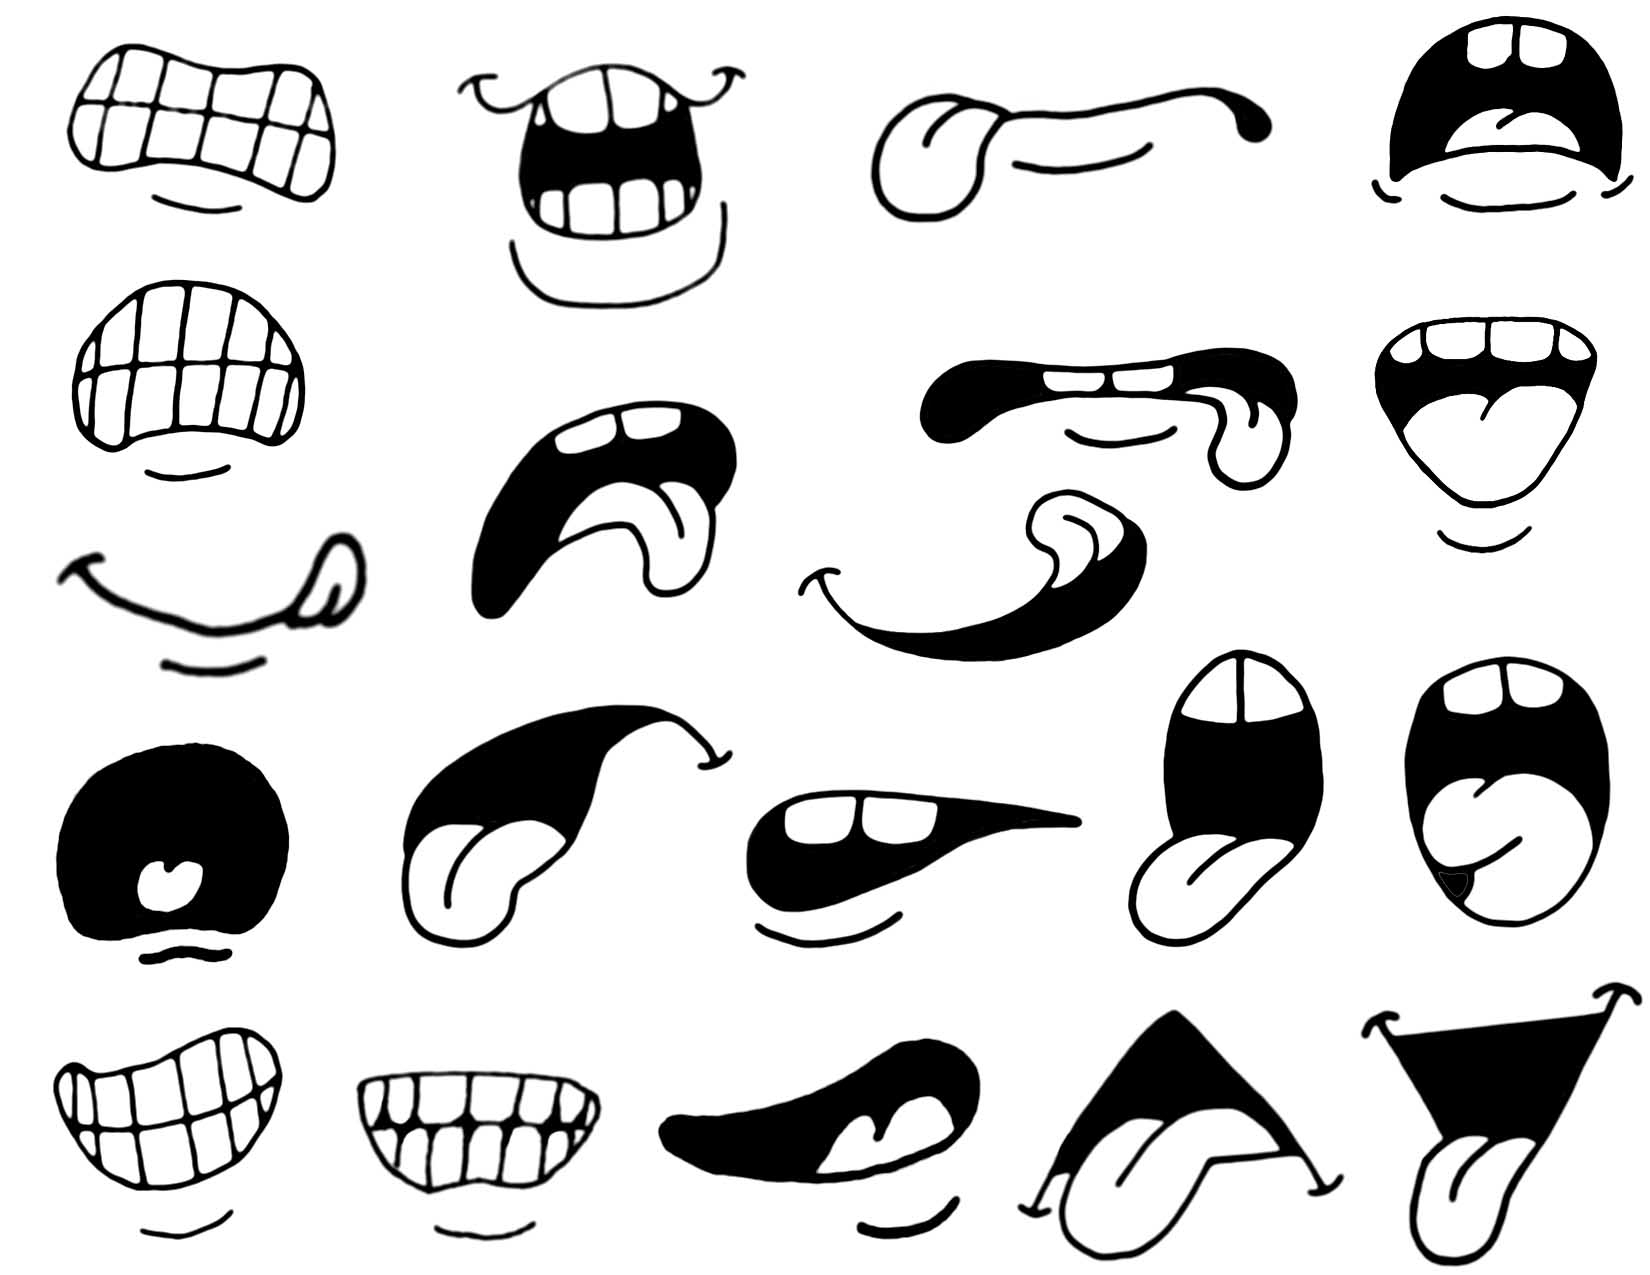 1650x1275 Cartoon Lips Drawing How To Draw Cartoon Mouths.